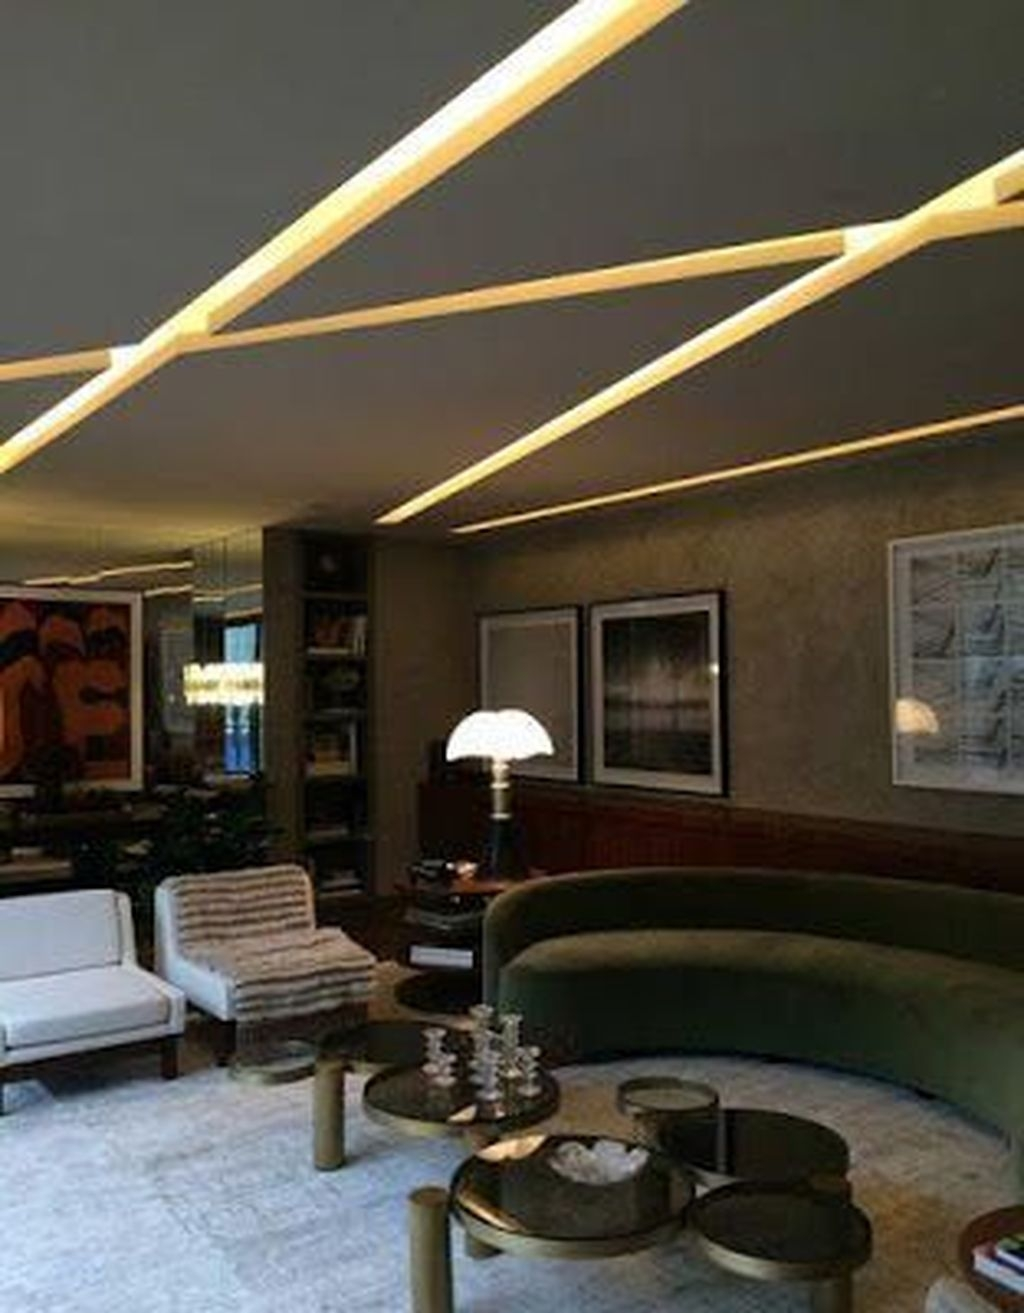 Unordinary Ceiling Design Ideas For Your Bedroom09